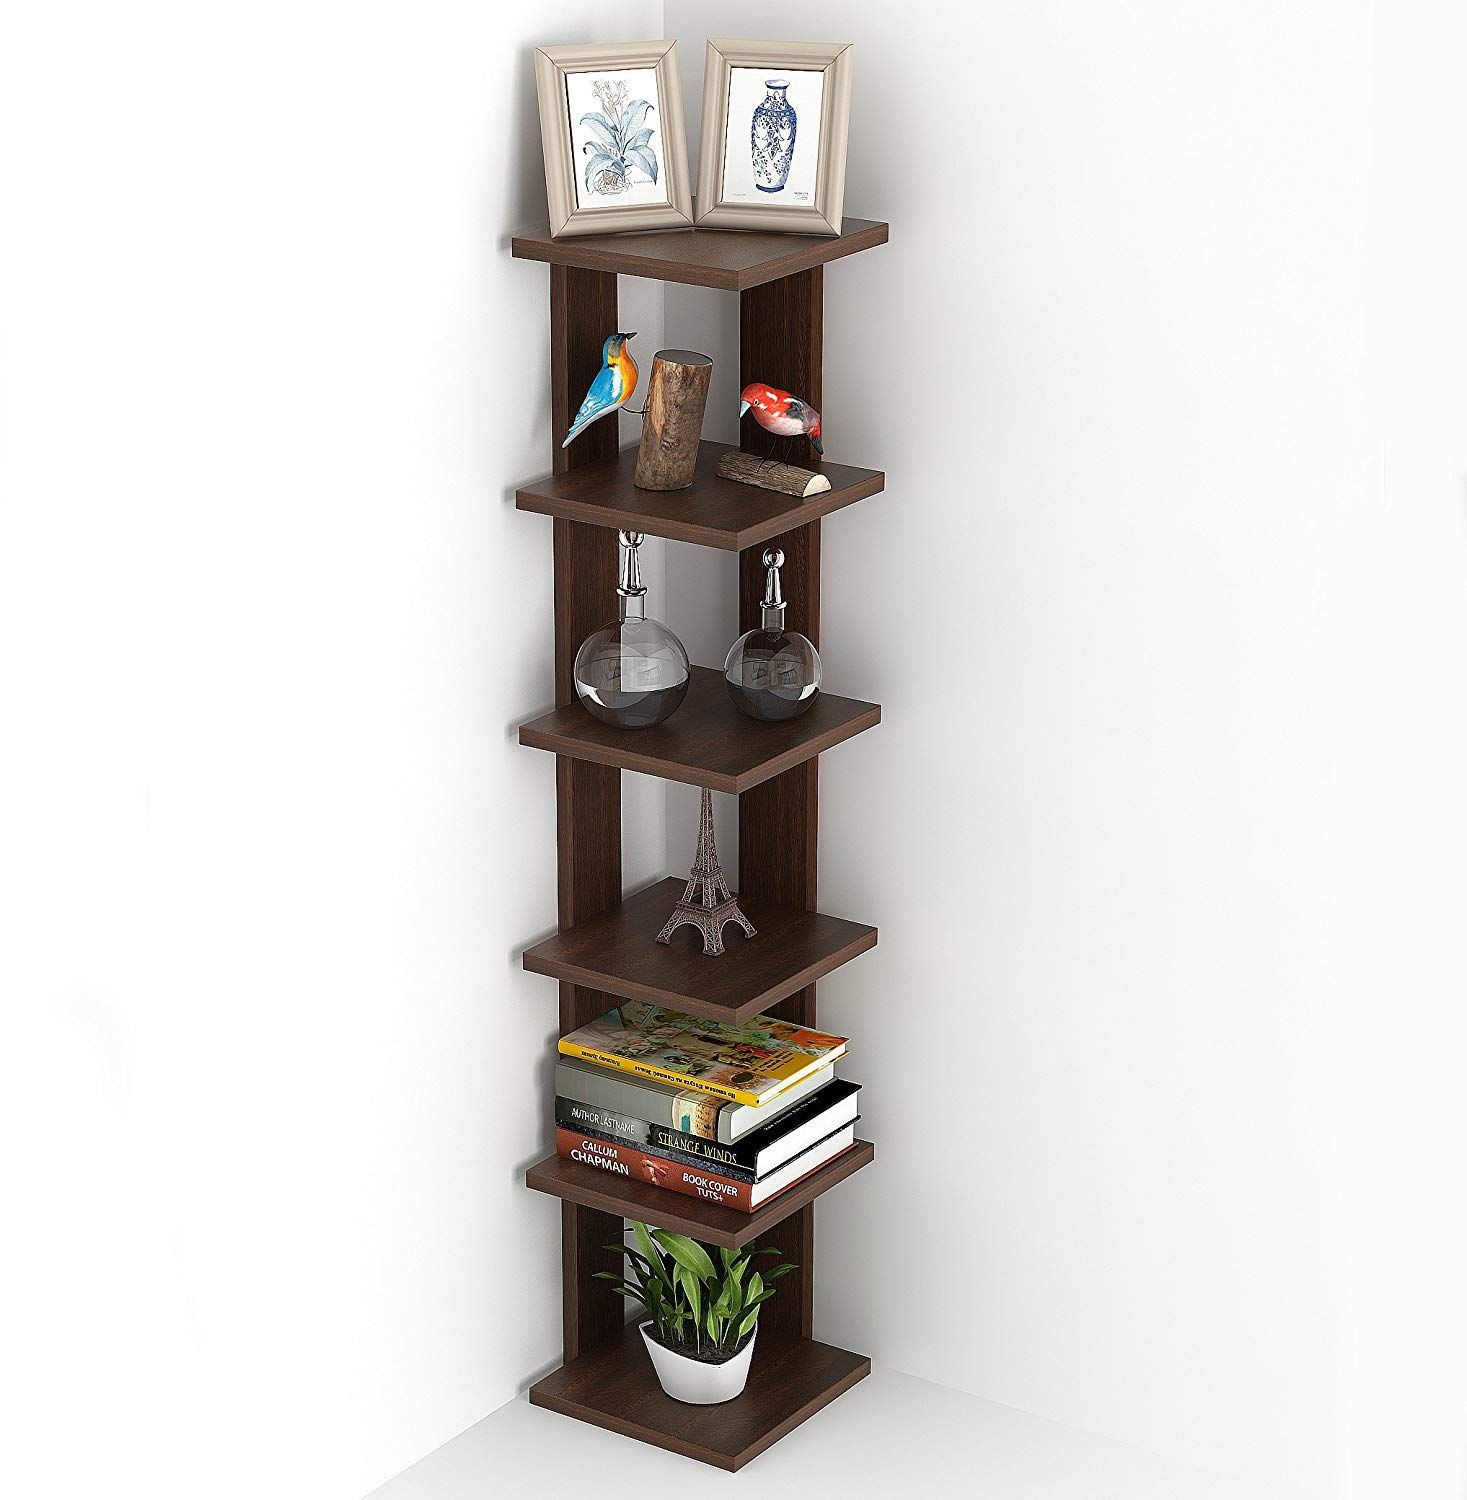 Pin By Amazon Galaxy Shopping On My Furniture Wall Mounted Corner Shelves Shelves Display Shelves